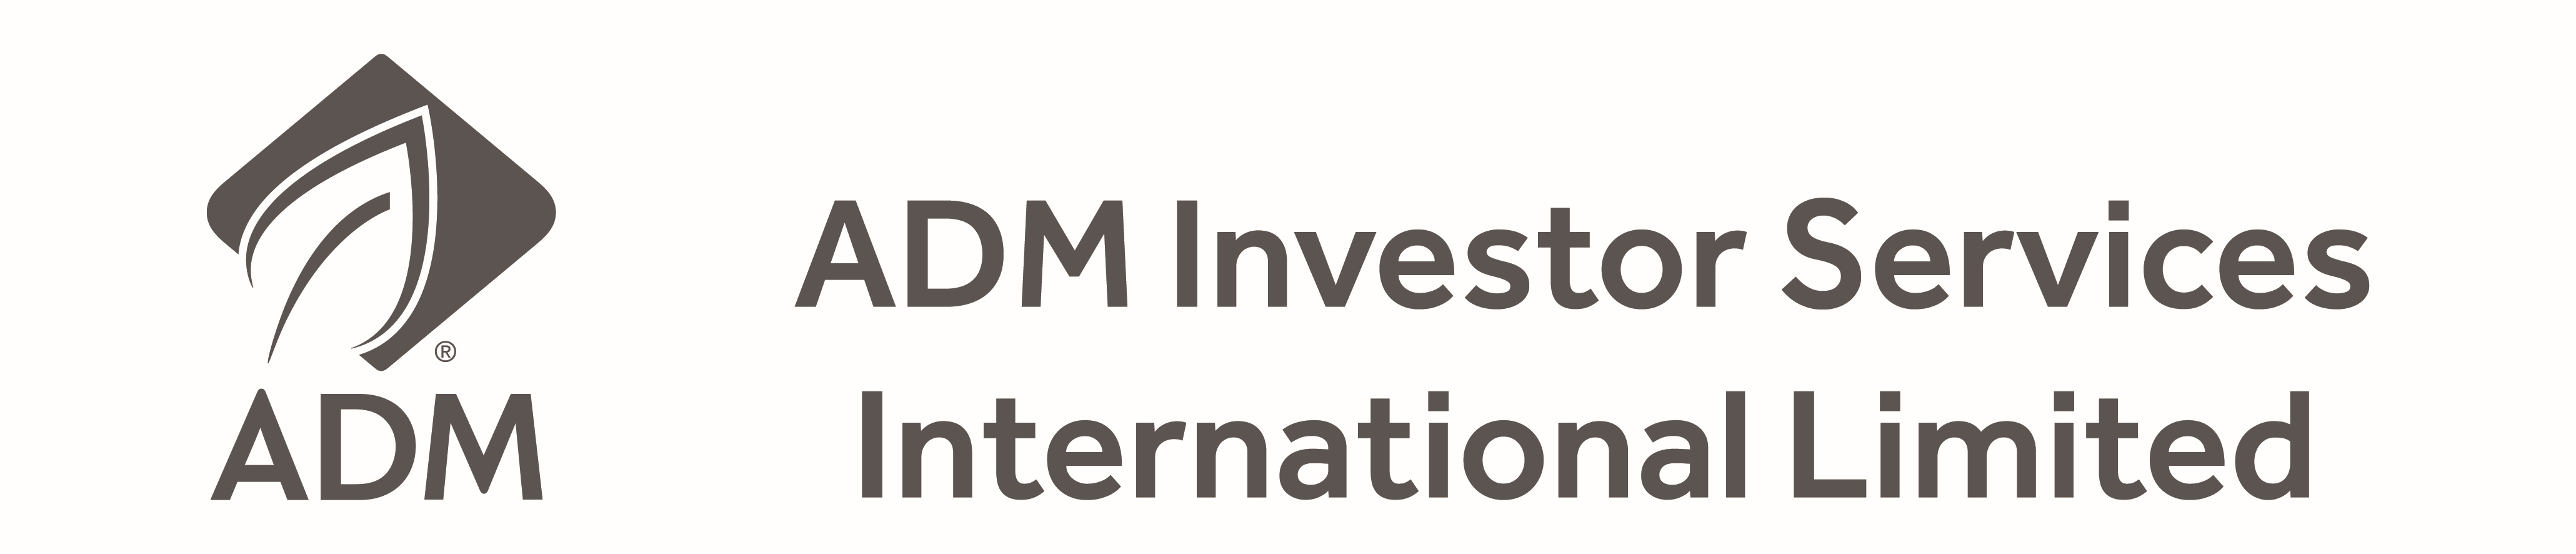 ADM Investor Services International Limited Logo